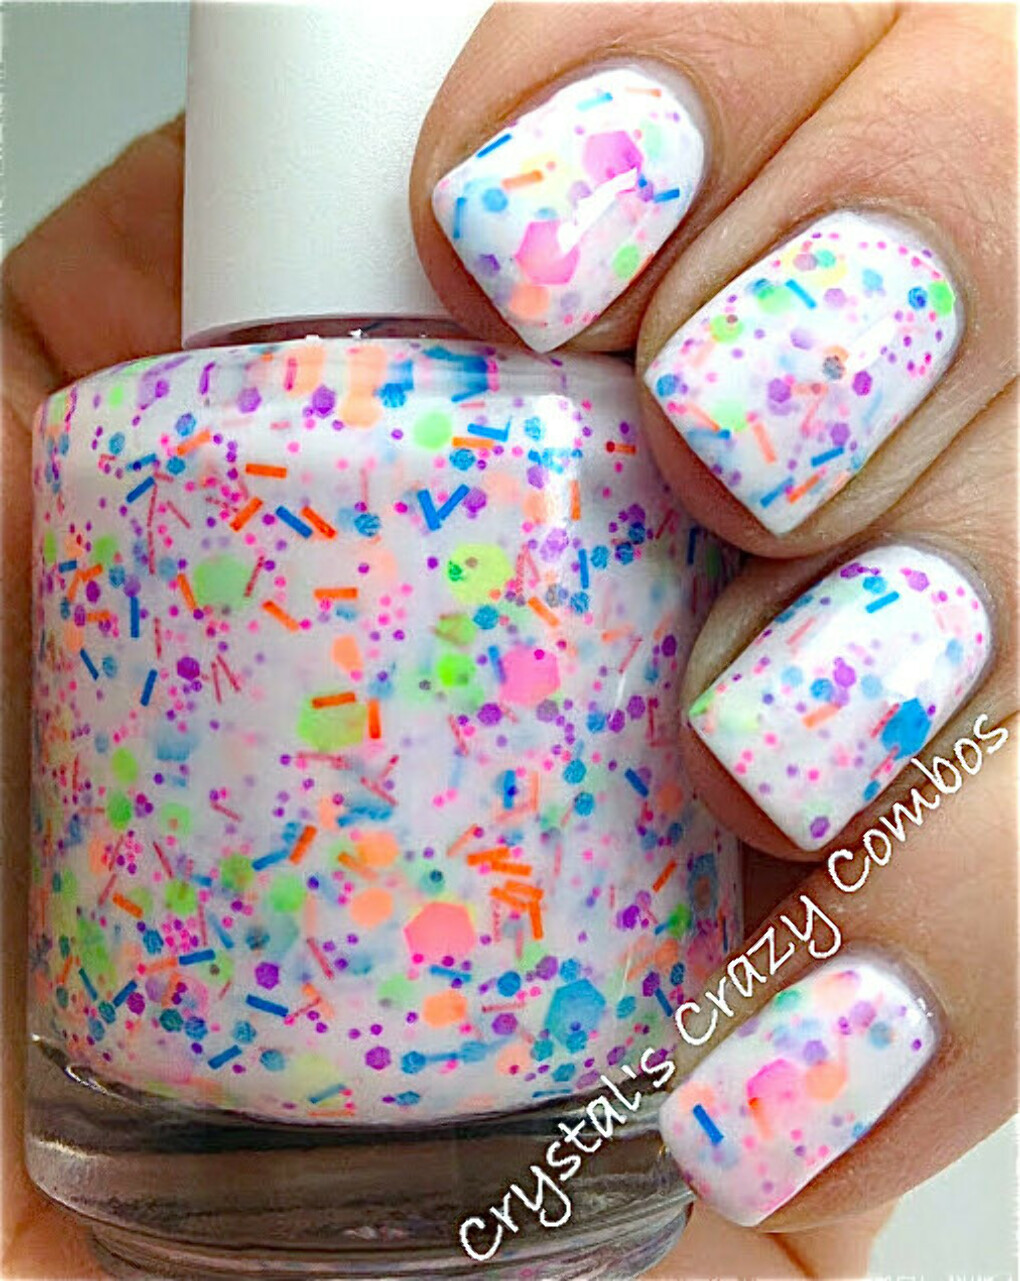 Haywire: Custom-Blended NEON Glitter Nail Polish / Lacquer